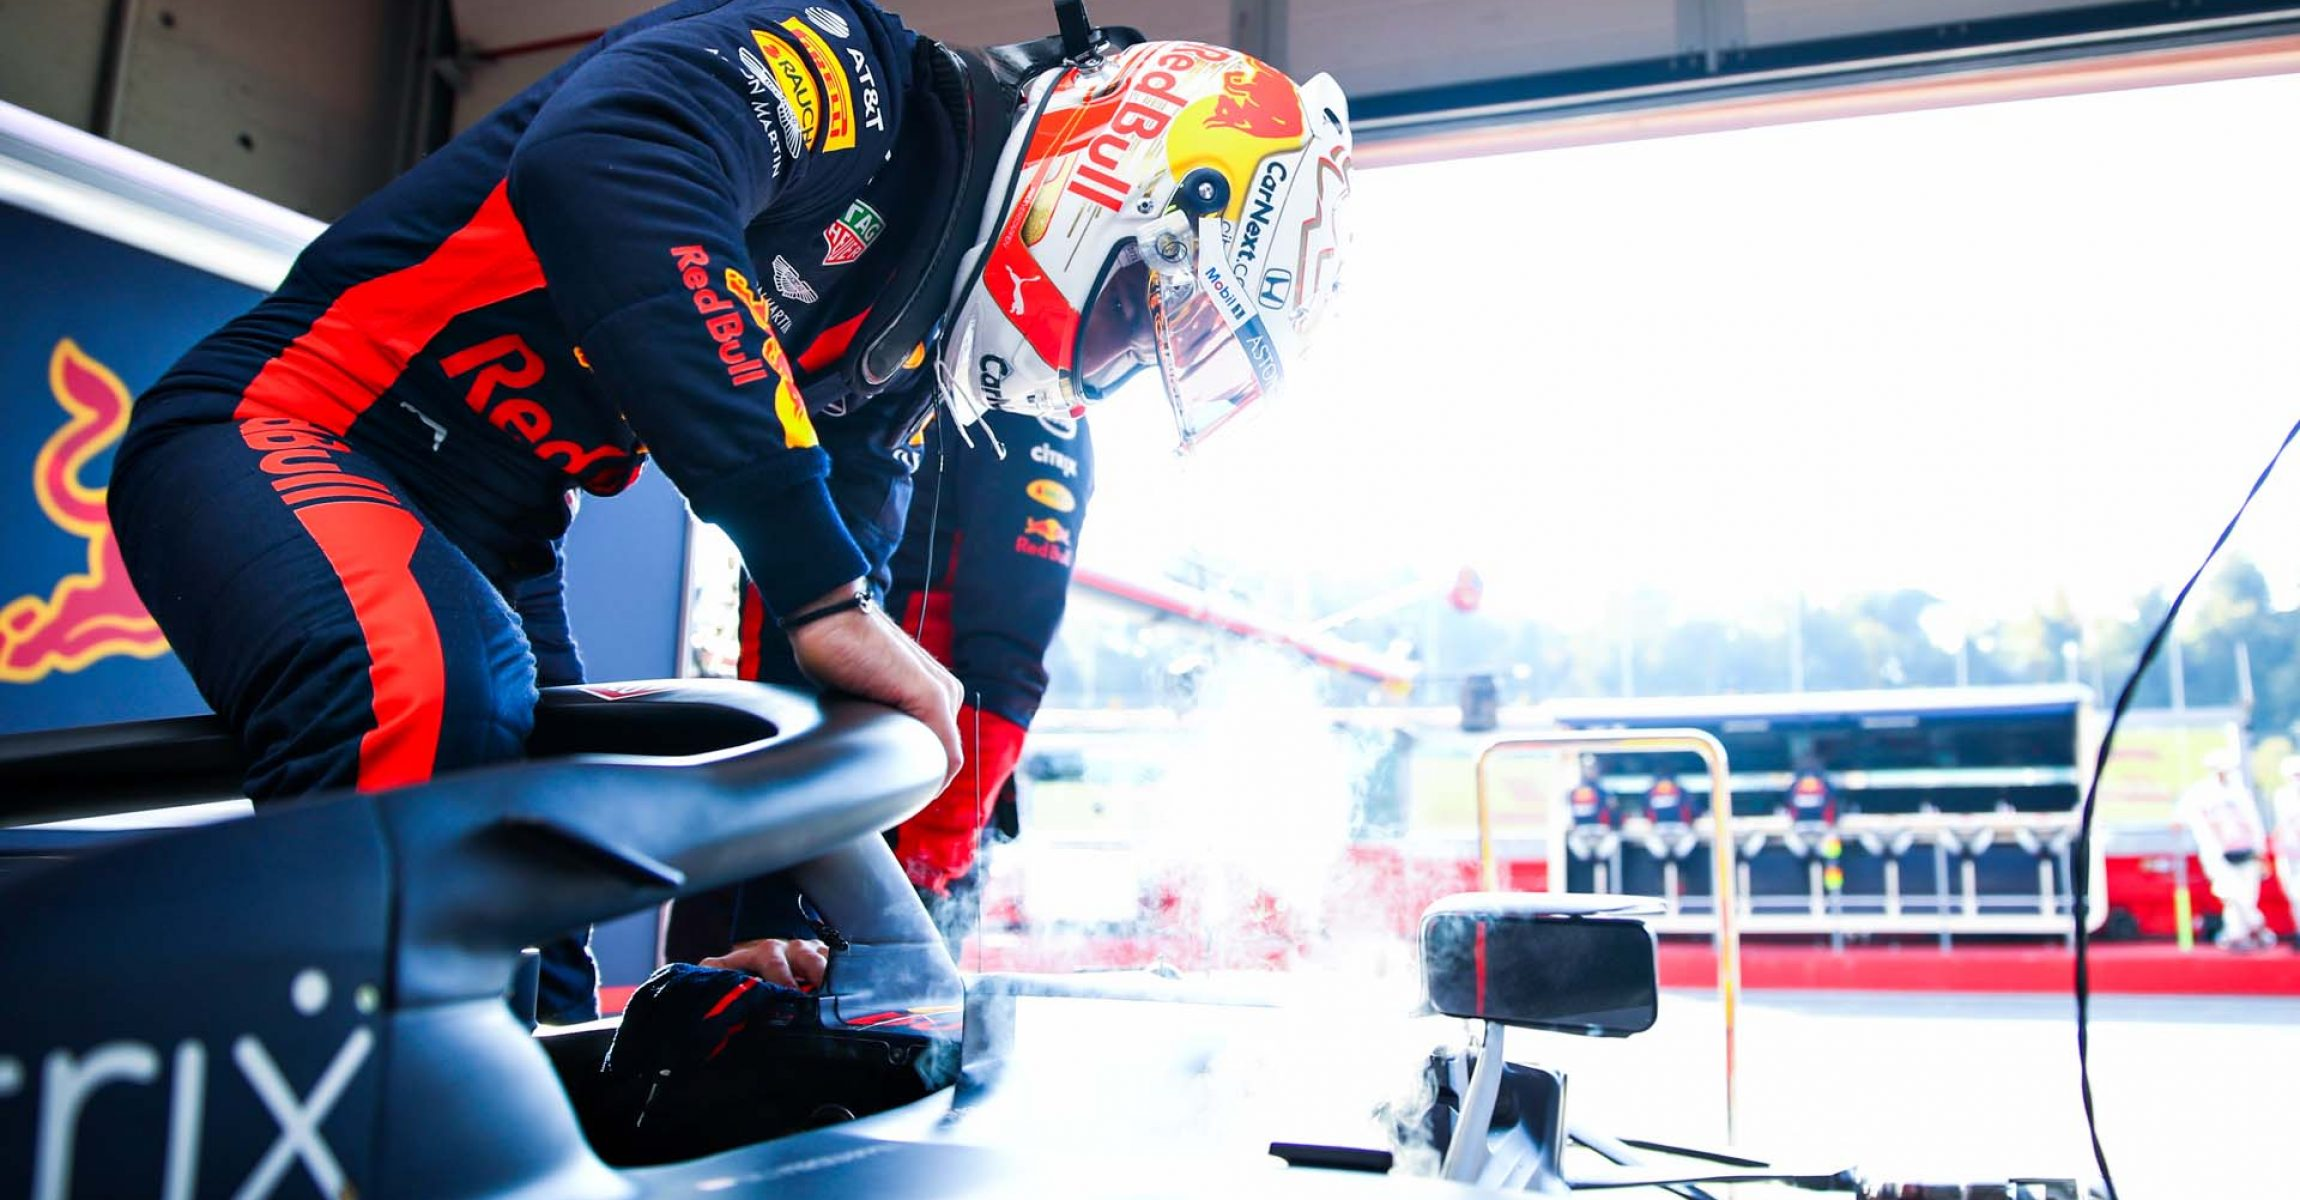 IMOLA, ITALY - OCTOBER 31: Max Verstappen of Netherlands and Red Bull Racing prepares to drive in the garage during practice ahead of the F1 Grand Prix of Emilia Romagna at Autodromo Enzo e Dino Ferrari on October 31, 2020 in Imola, Italy. (Photo by Mark Thompson/Getty Images)